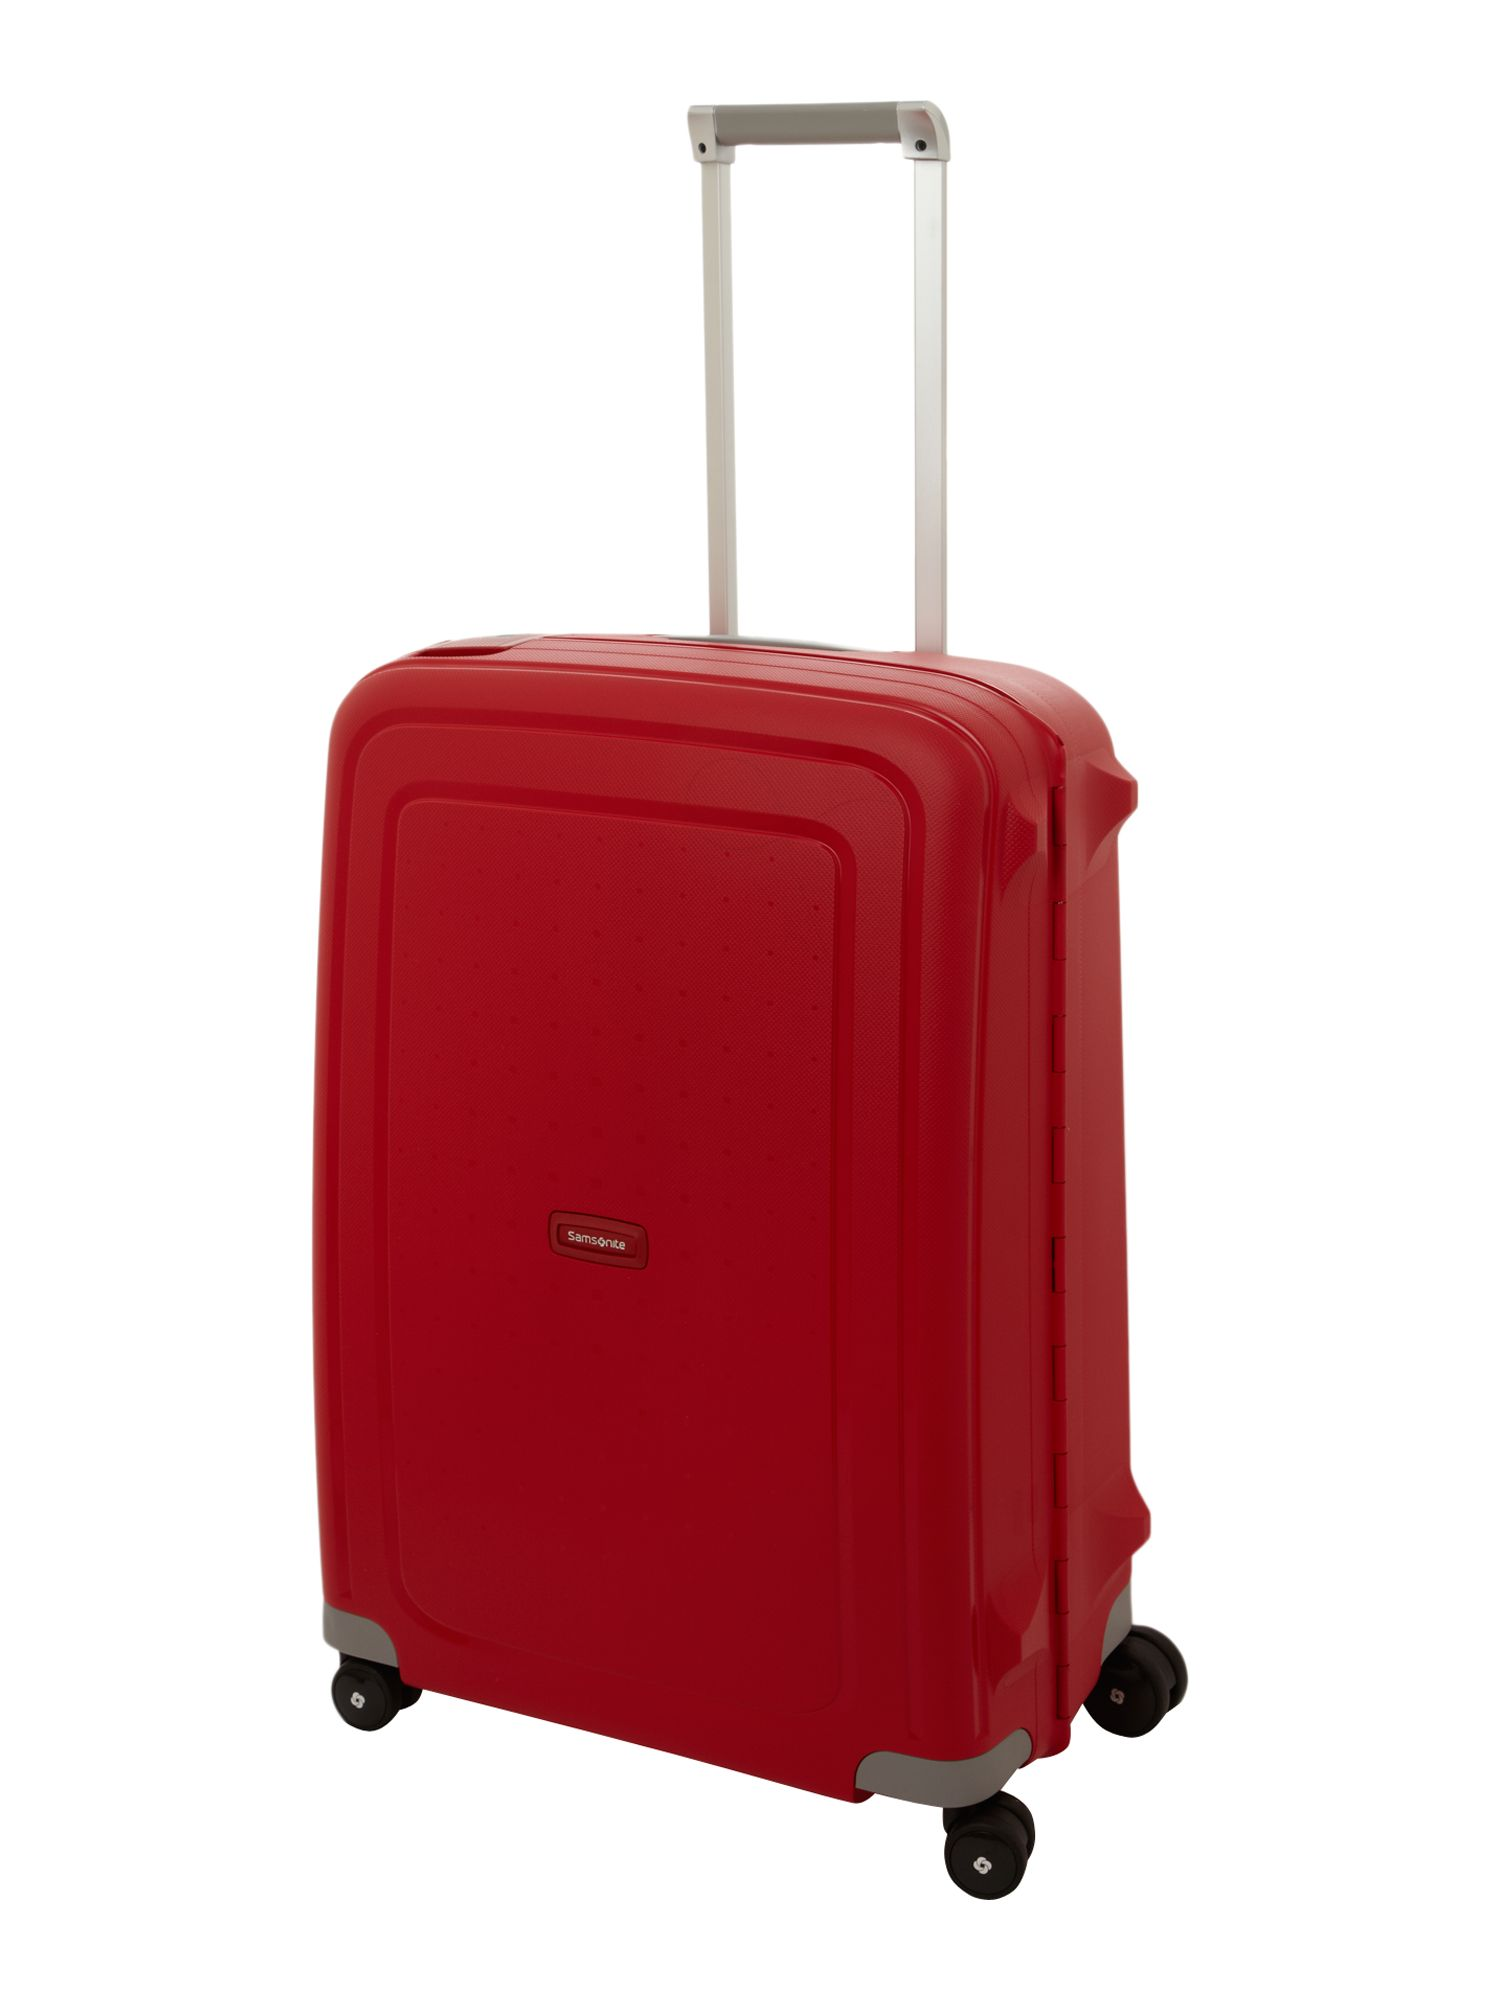 Samsonite S-Cure Red Range